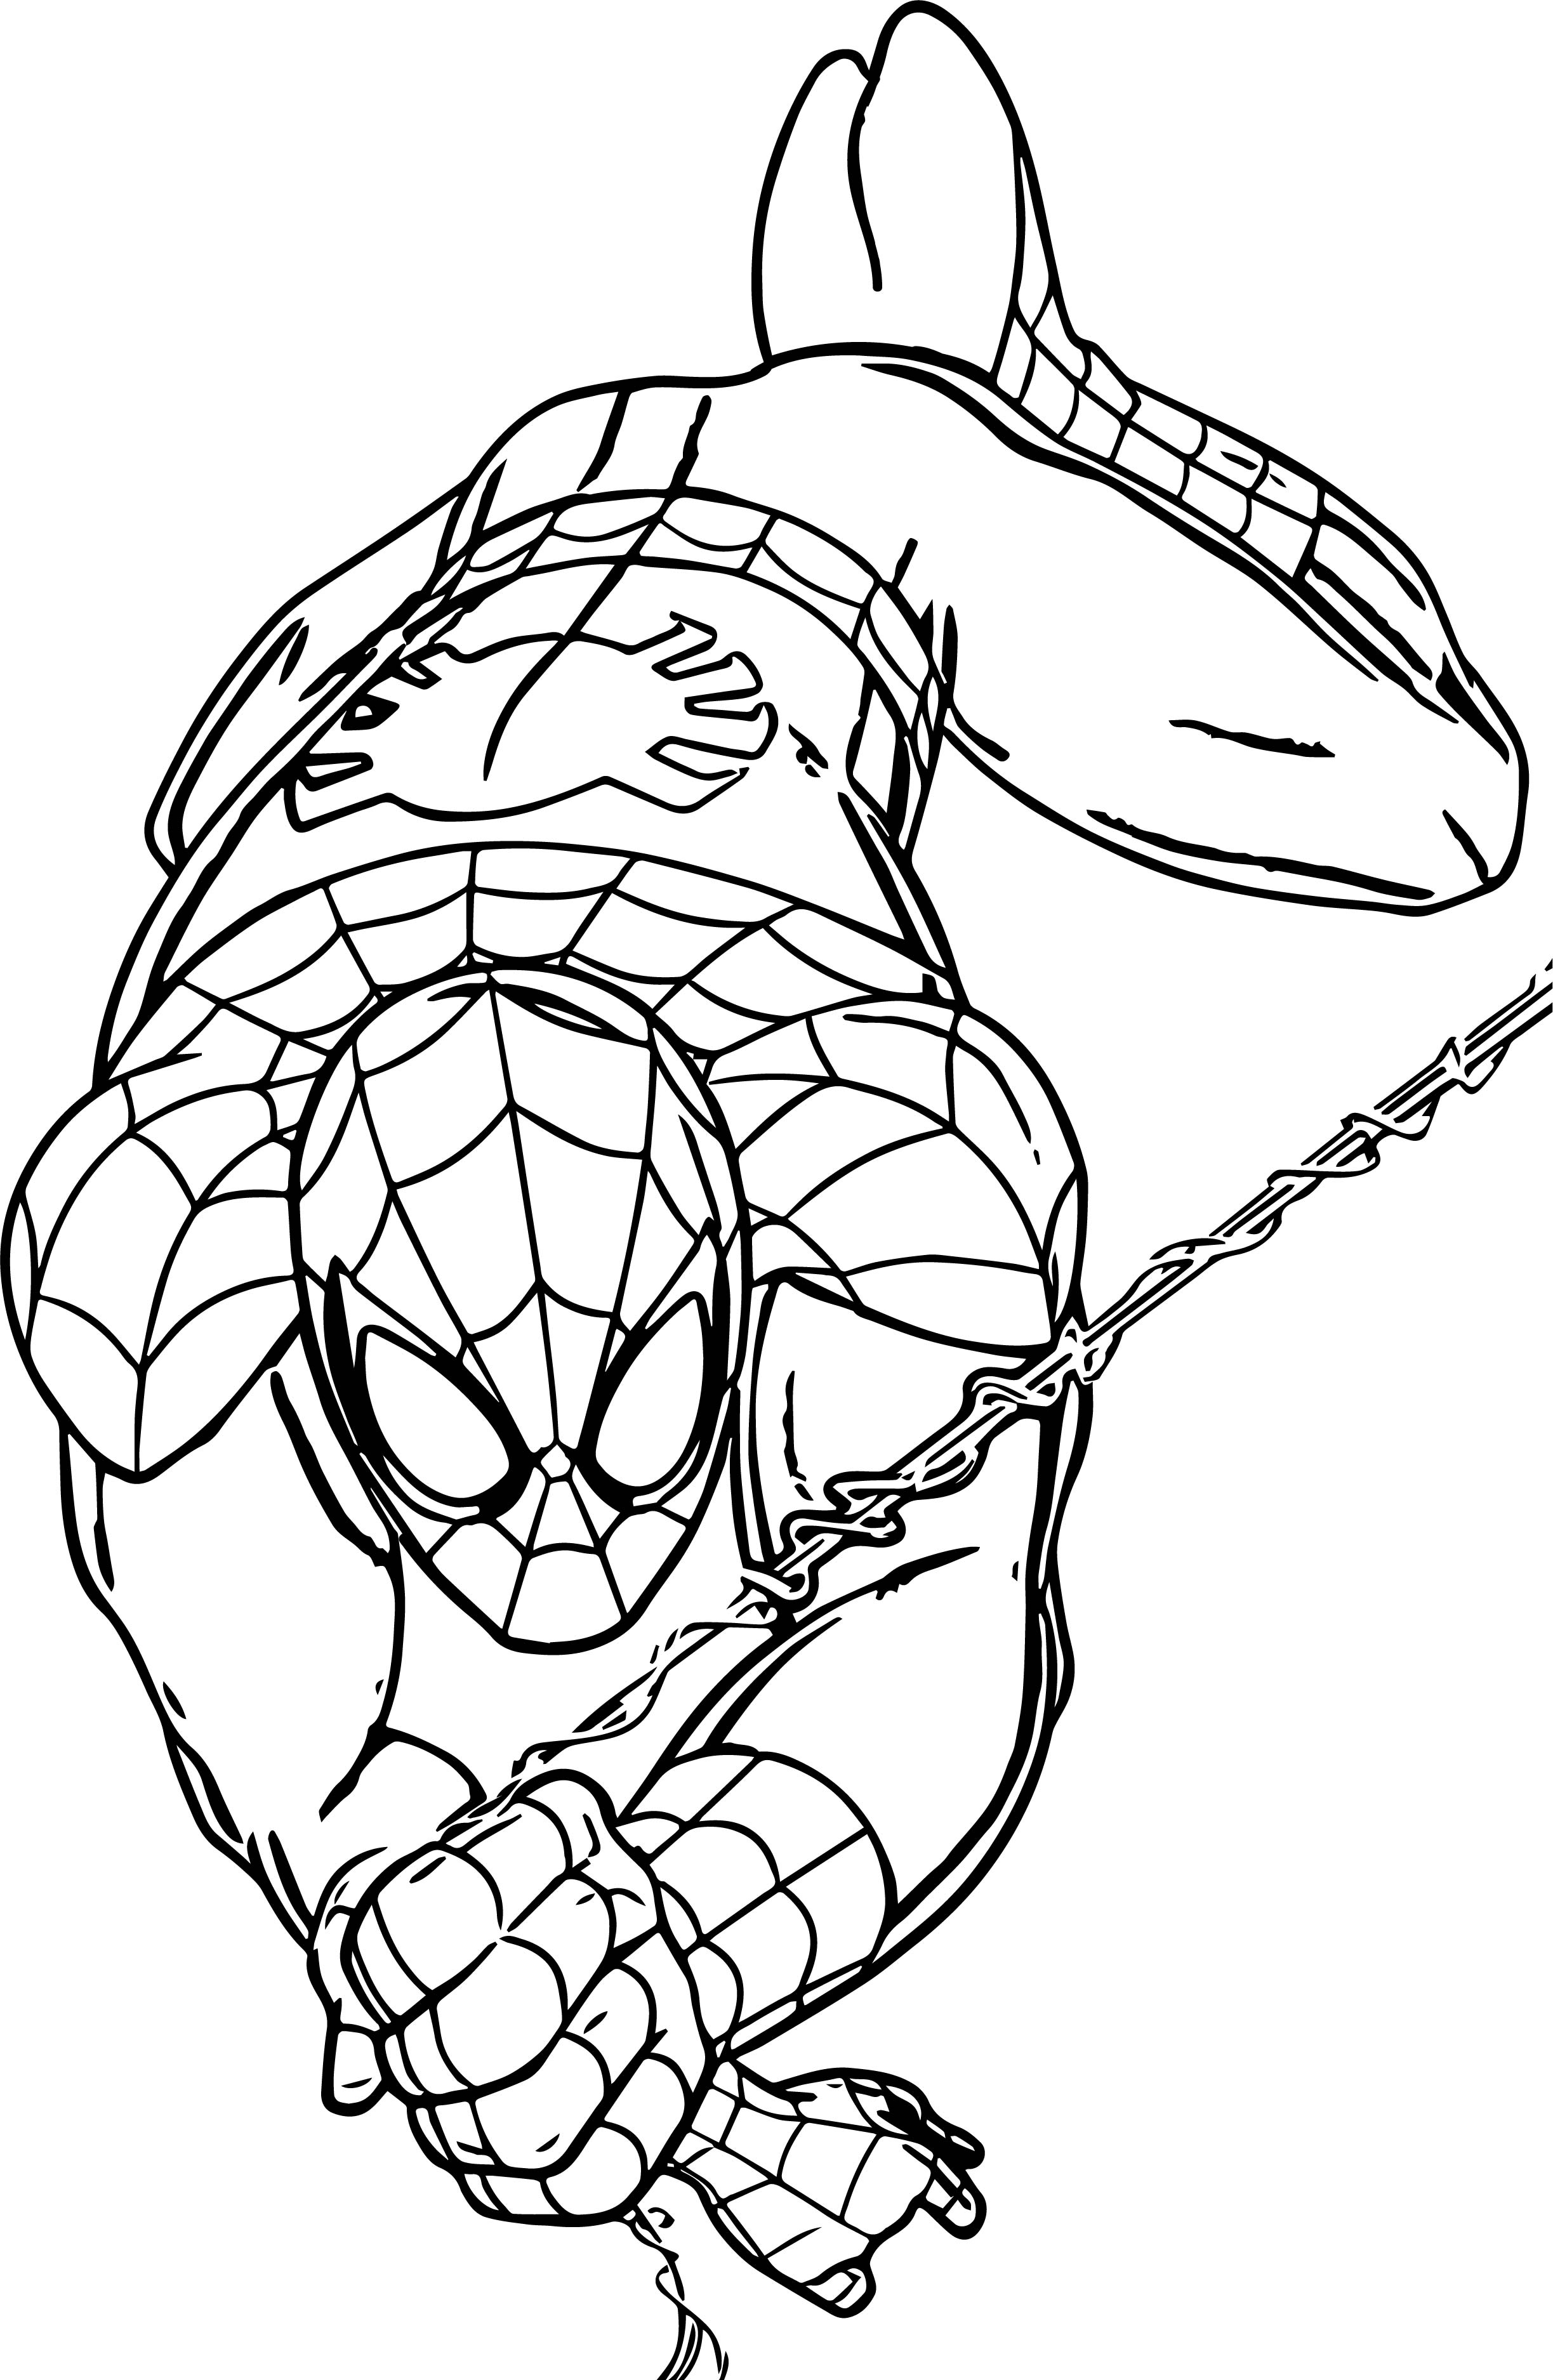 Spider Man Rope Coloring Page